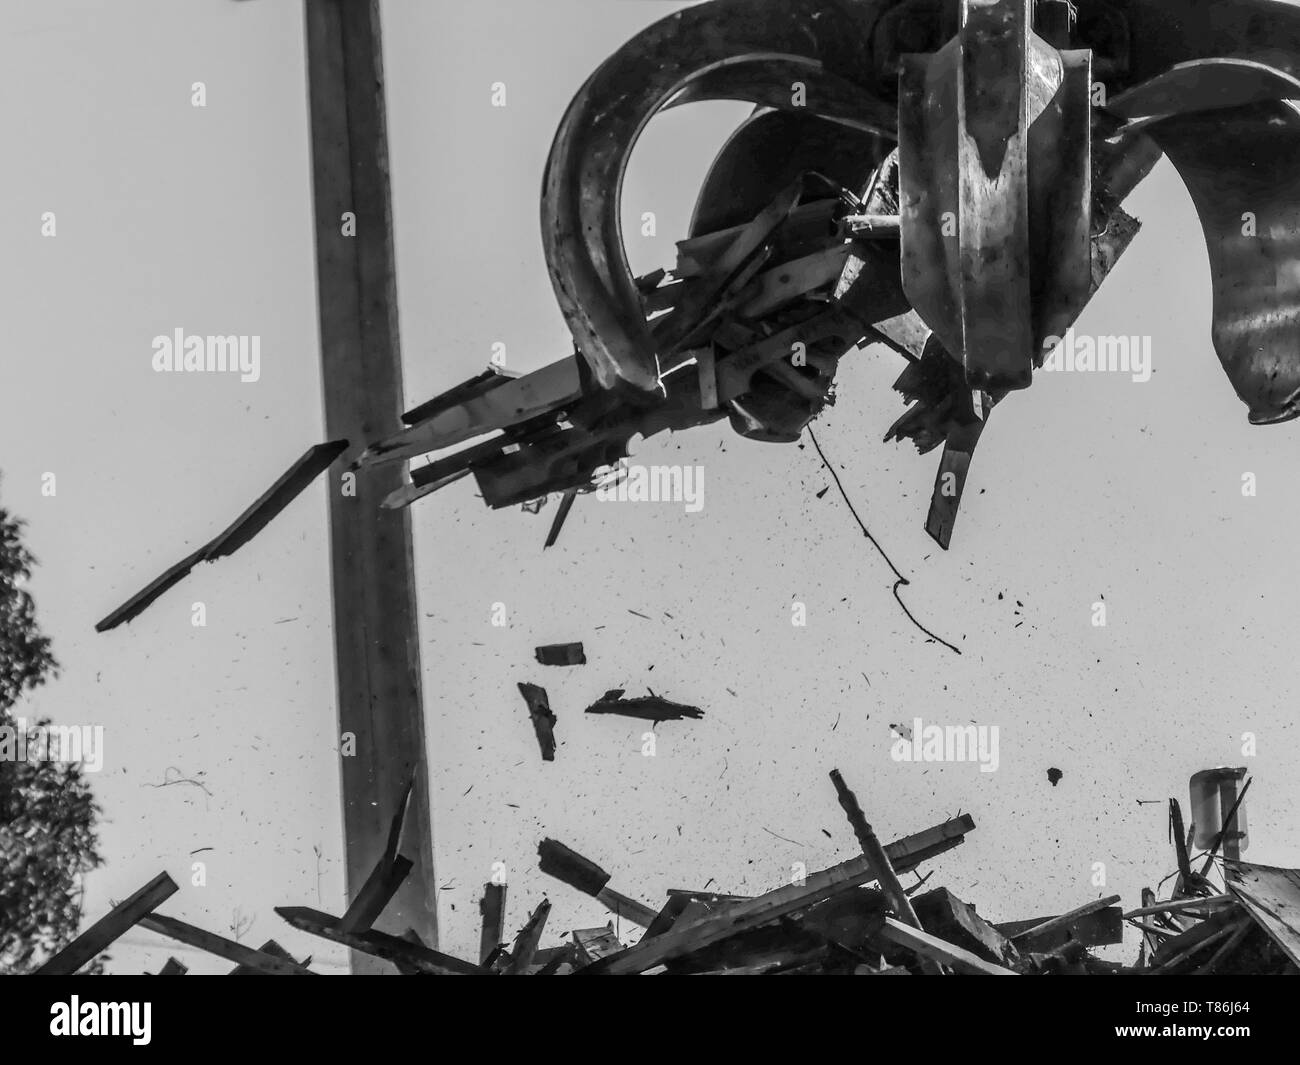 Excavator  working loading dump materials construction site claw closeup  - Stock Image